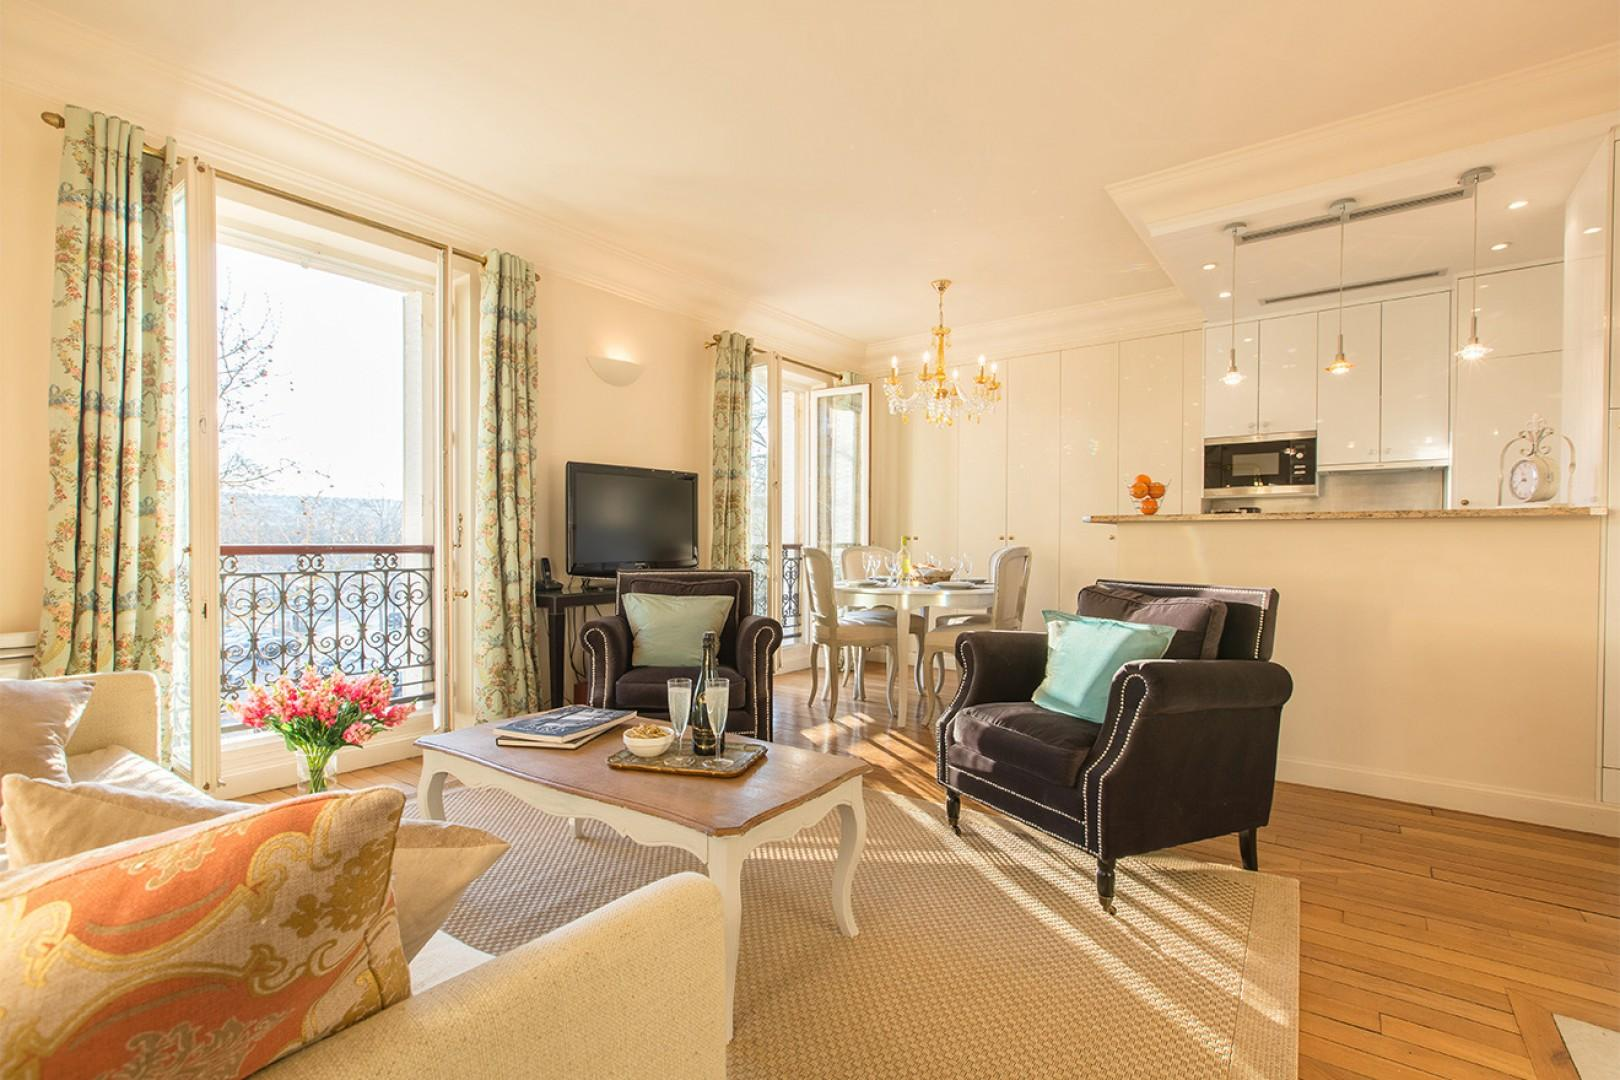 The space is richly decorated and comfortably furnished.